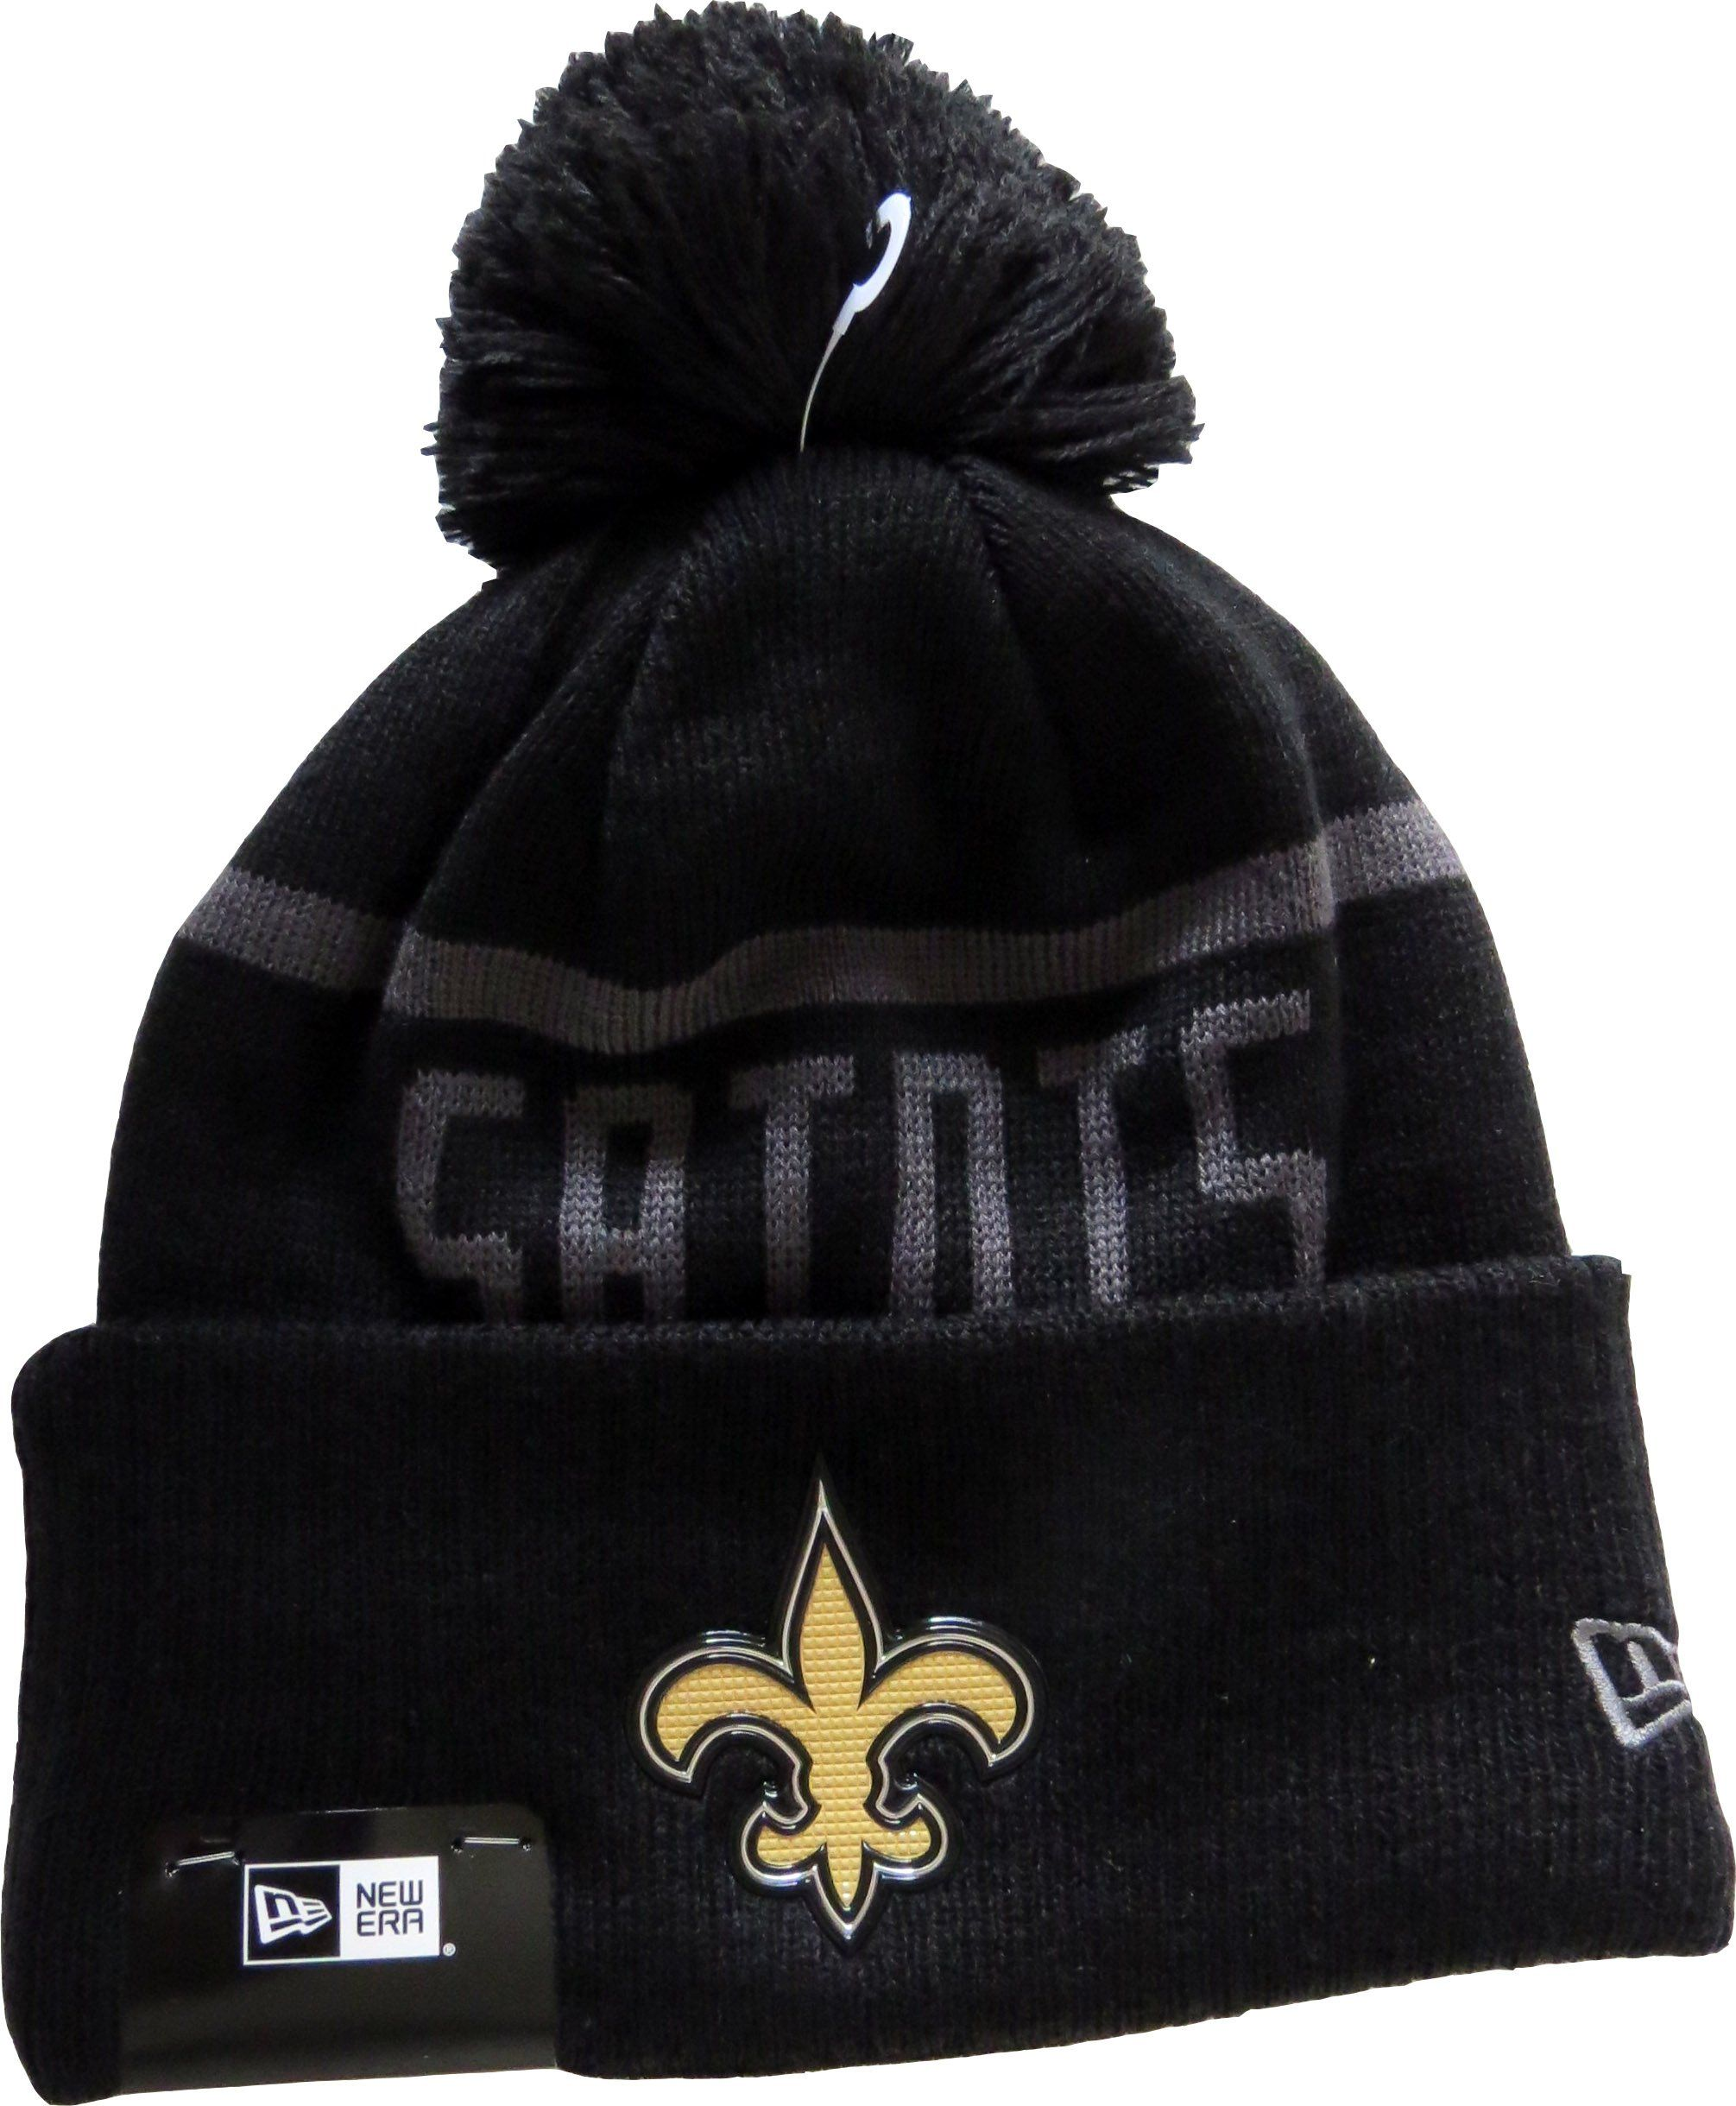 d562702f6 New Era International Series Game 2017 NFL Bobble Hat. Black with the Grey  Team name